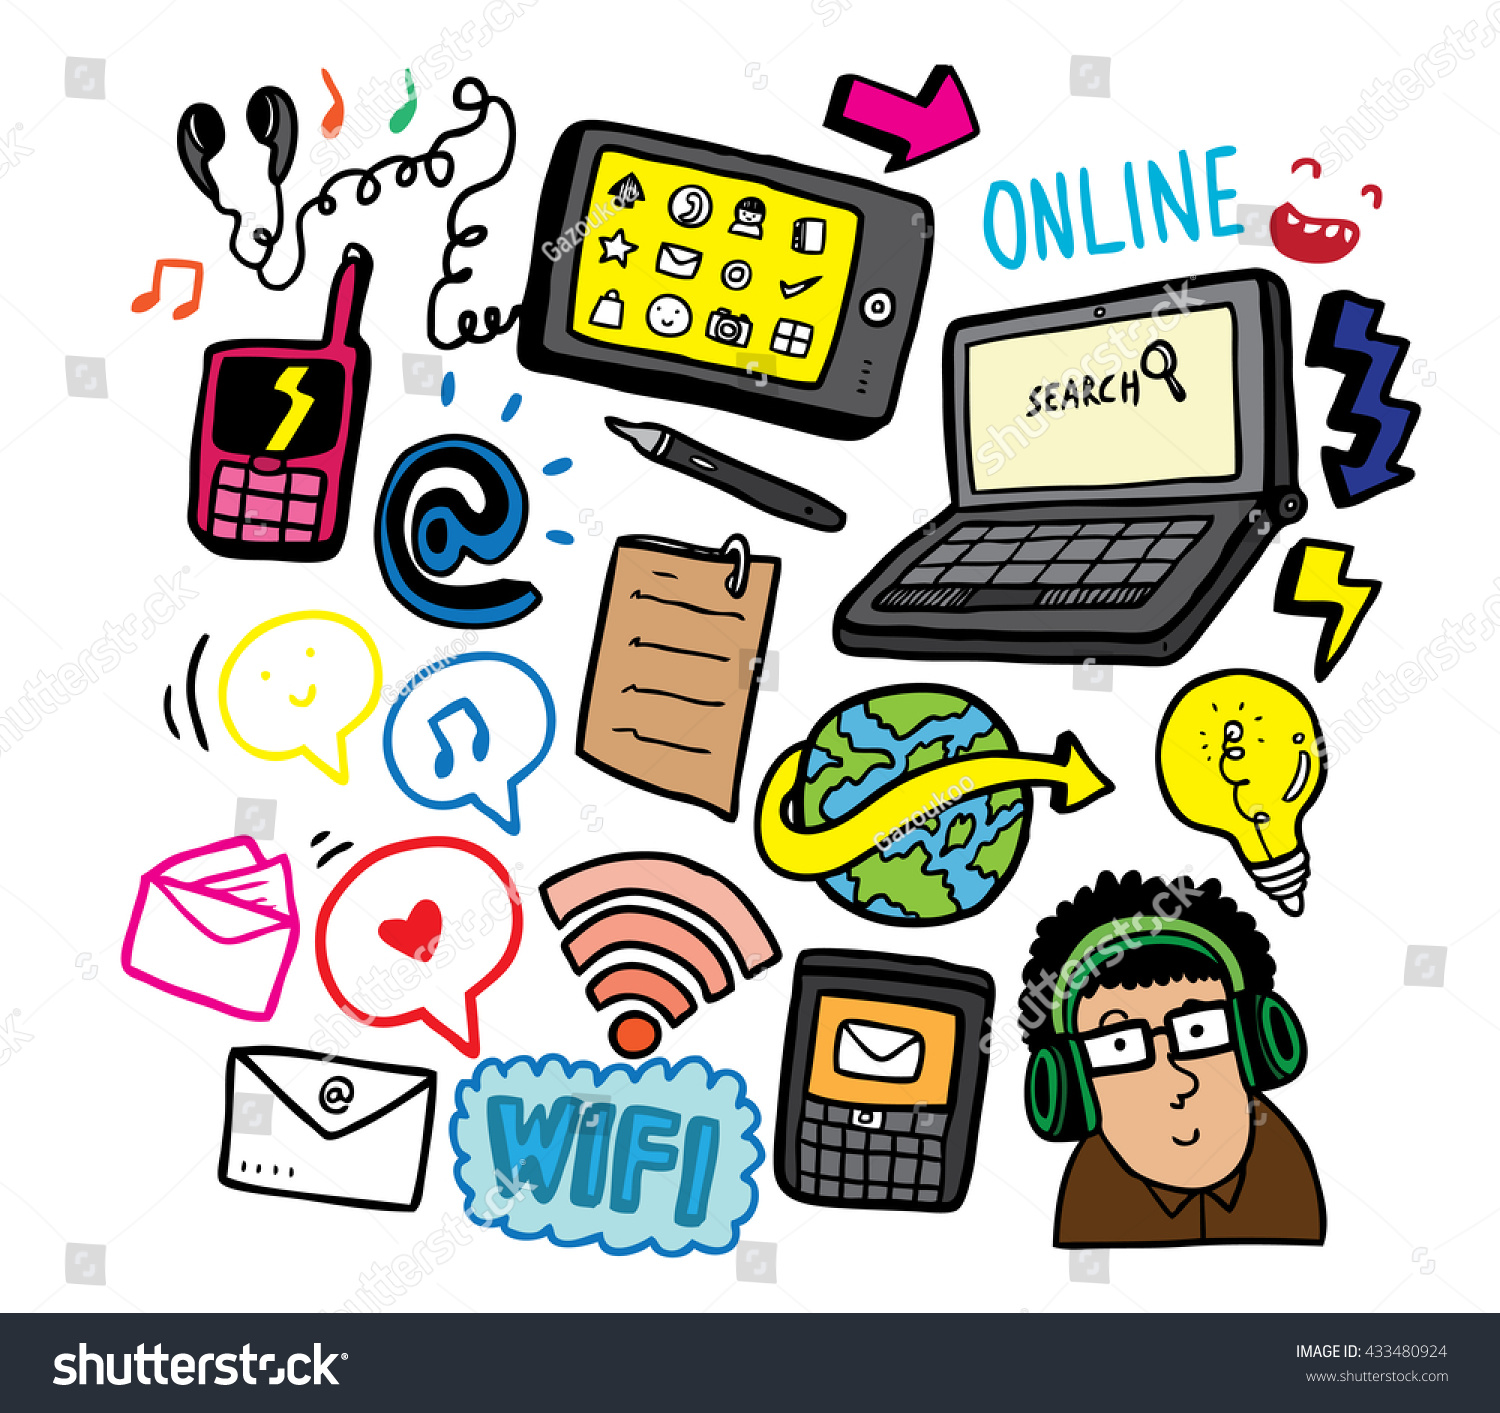 Technology clipart doodle art #8